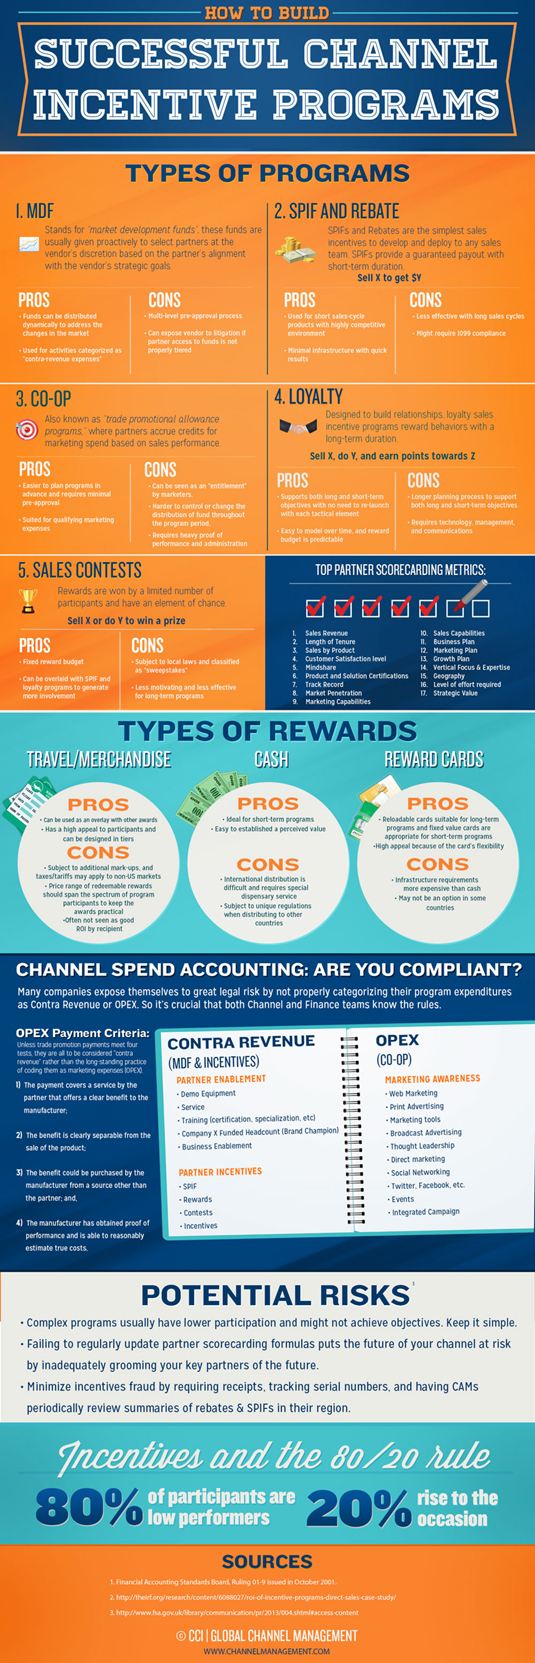 successful channel incentive programs 2 Infographic: How to Build Successful Channel Incentive and MDF Programs